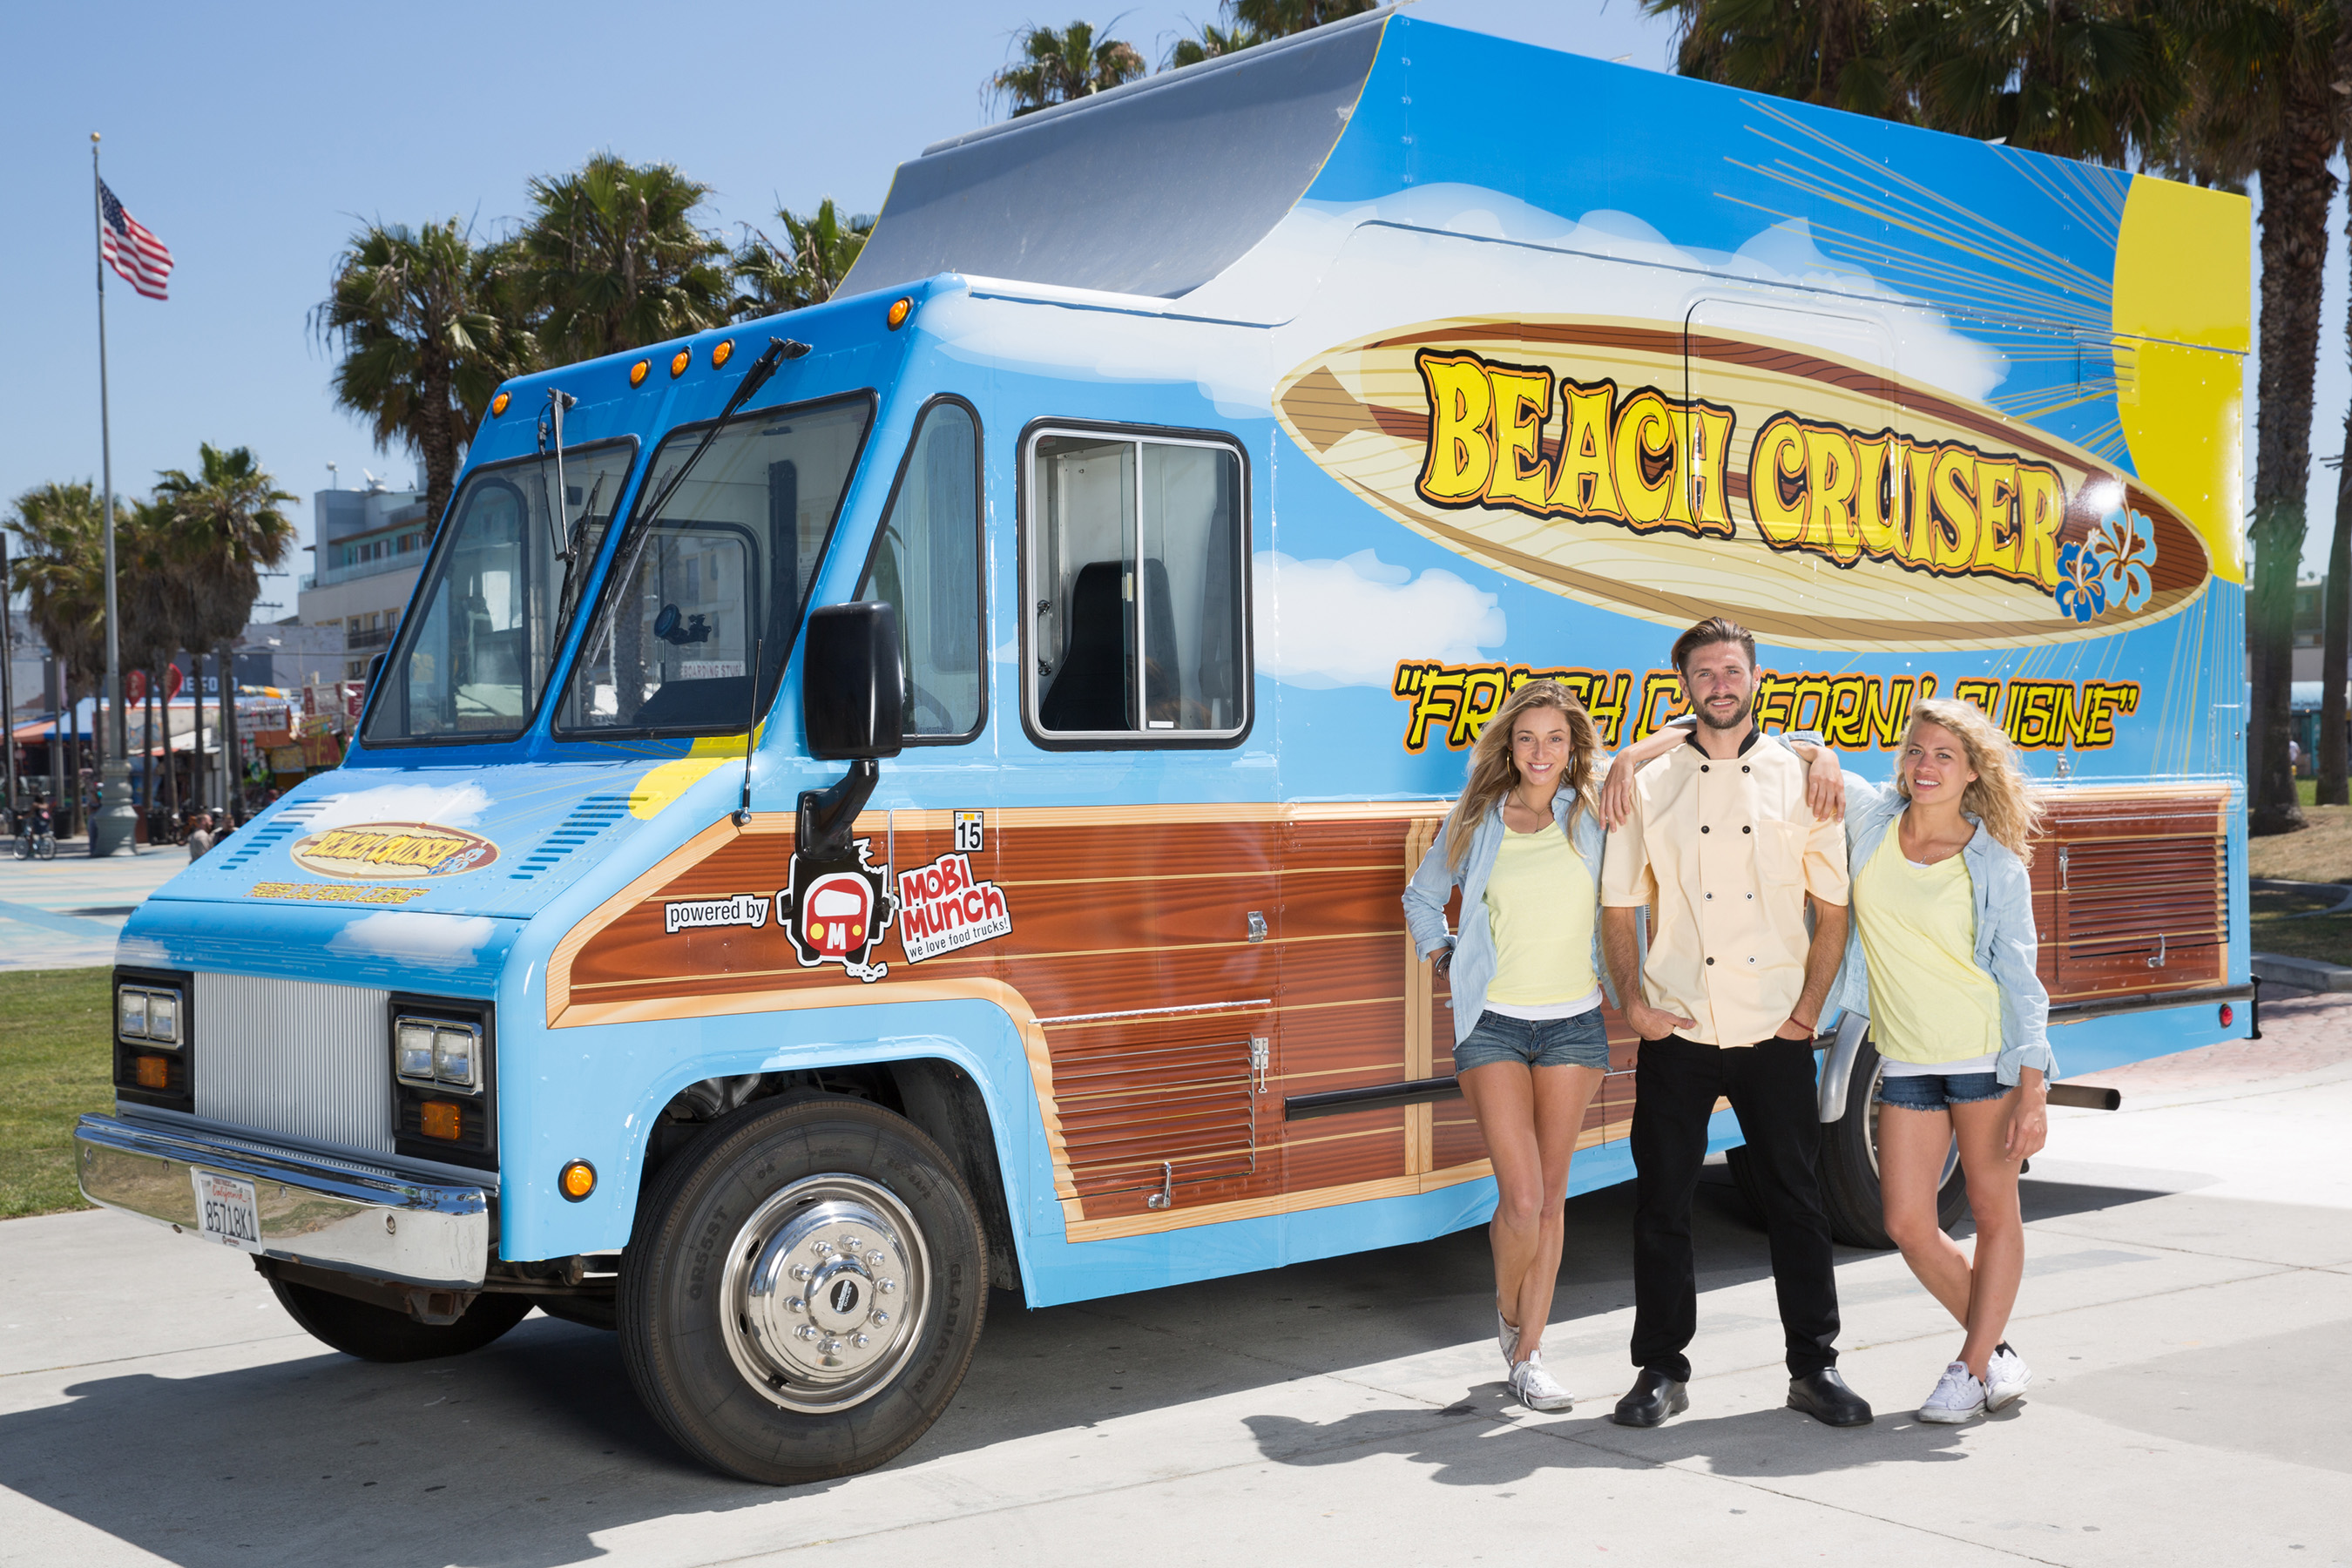 Beach Cruiser Food Truck Gretta